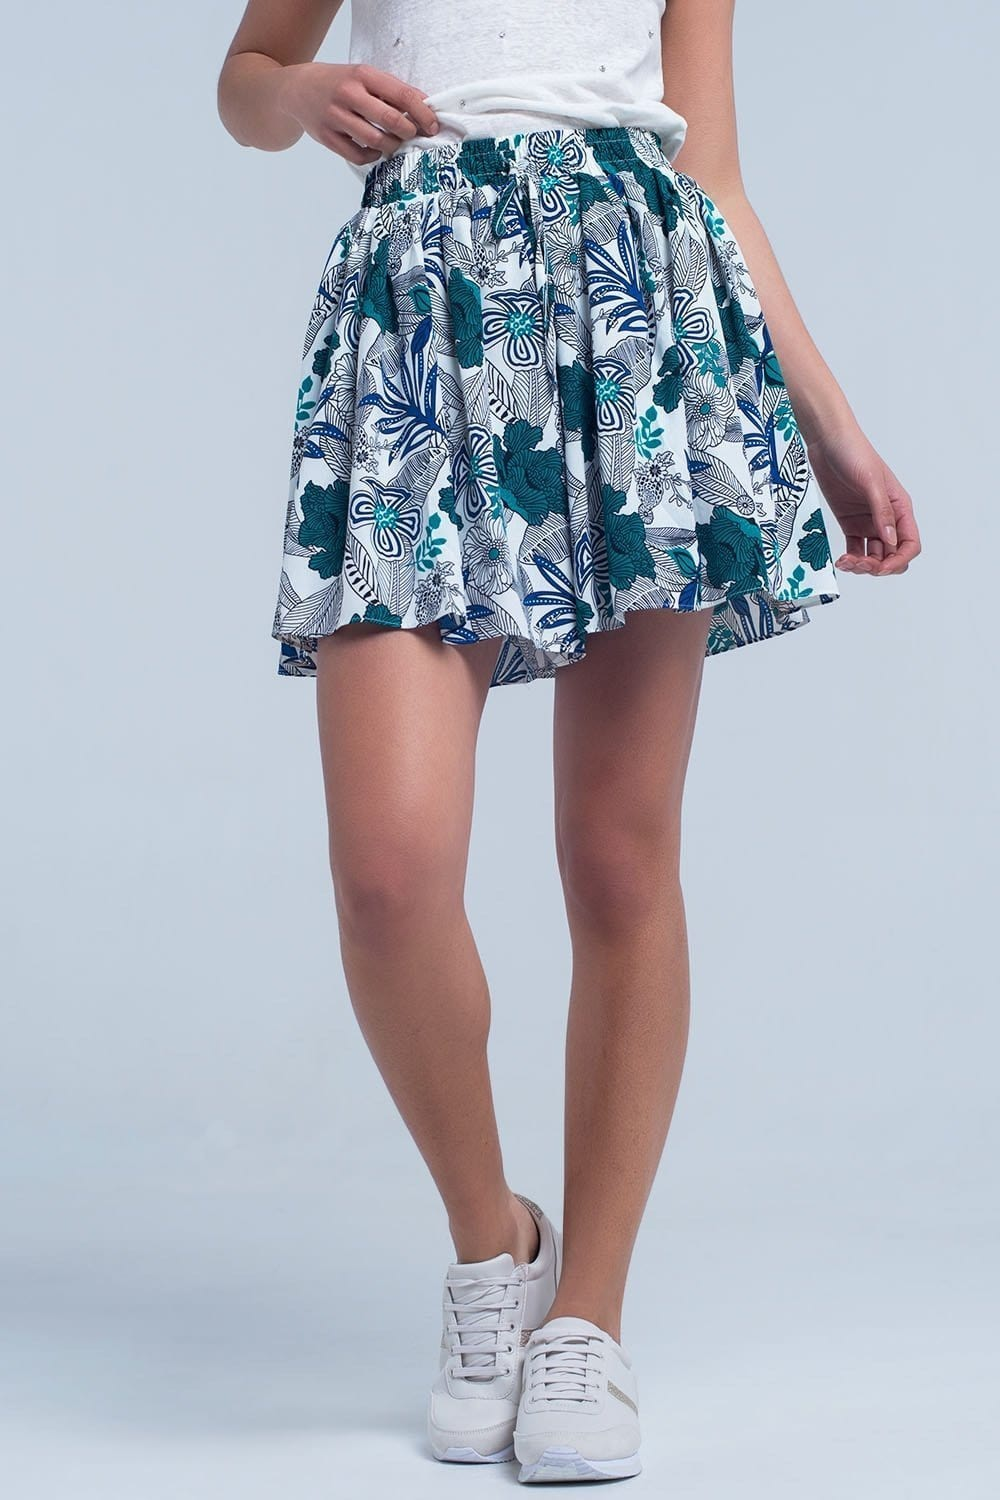 Blue mini skorts with floral print - Himelhoch's